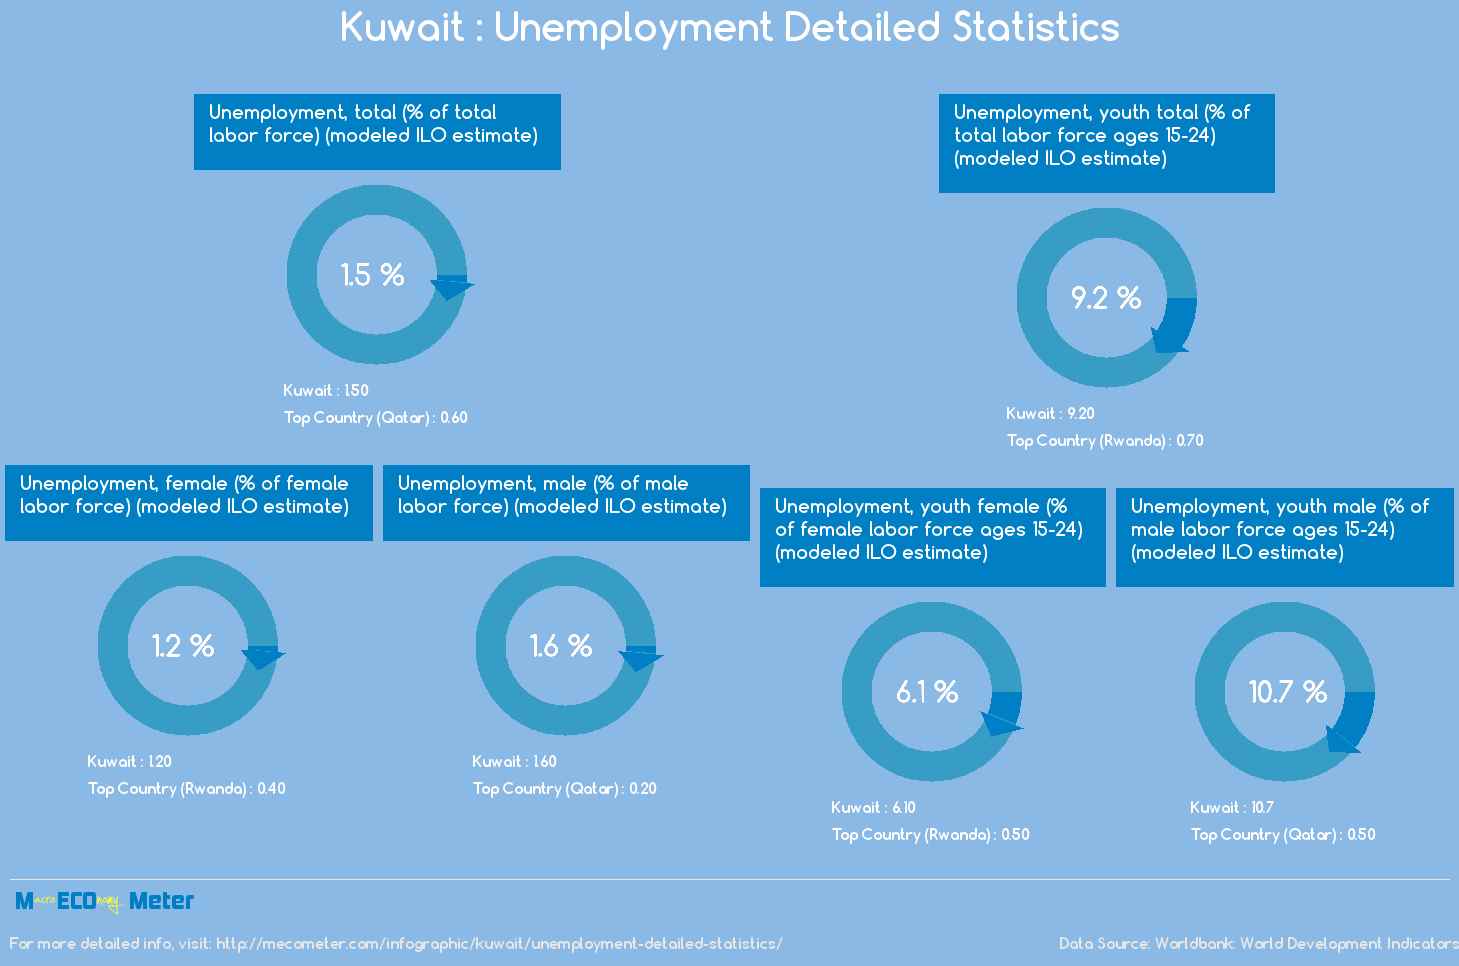 Kuwait : Unemployment Detailed Statistics